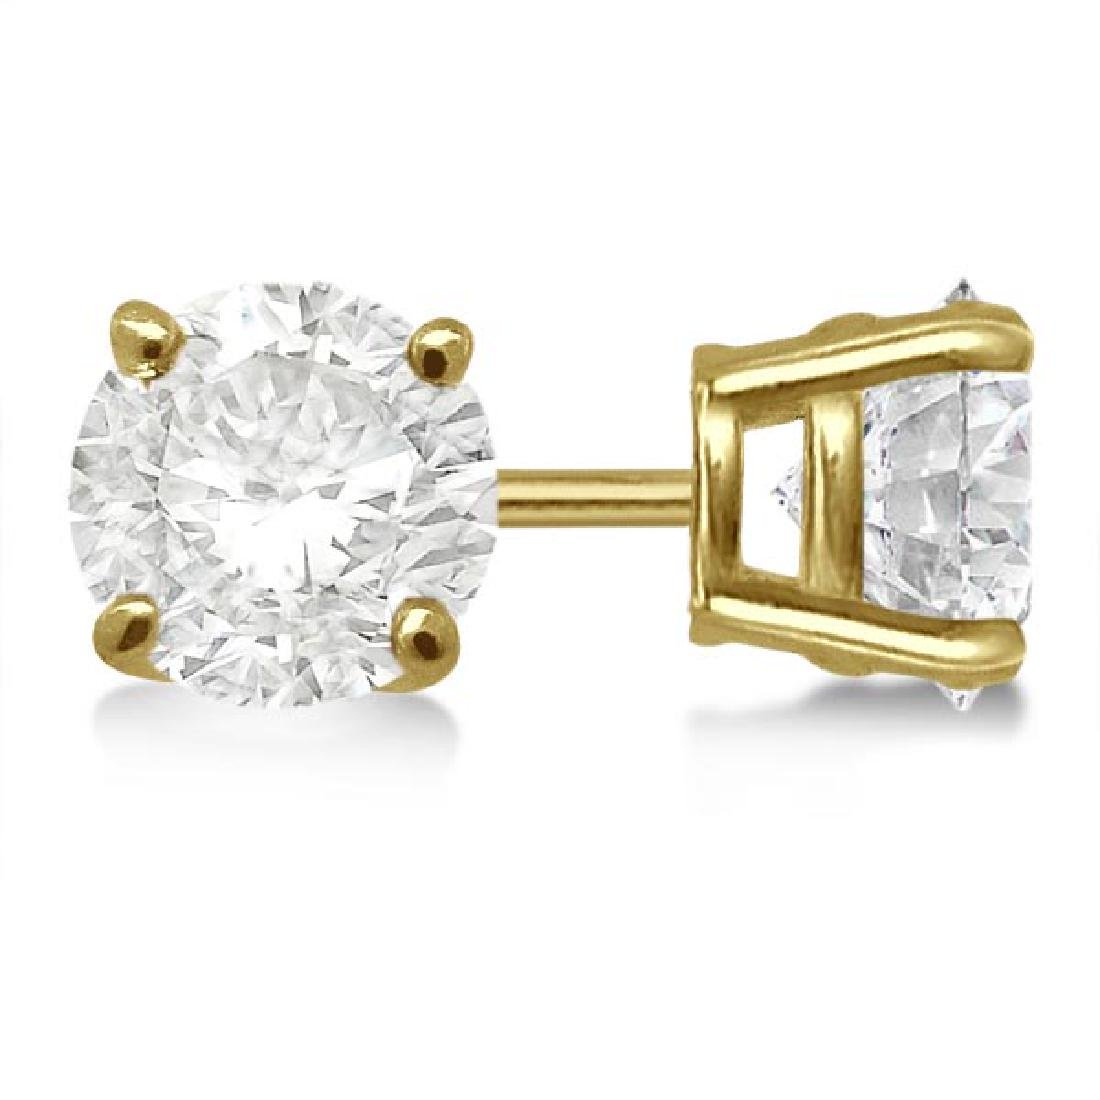 CERTIFIED 1 CTW ROUND F/SI2 DIAMOND SOLITAIRE EARRINGS